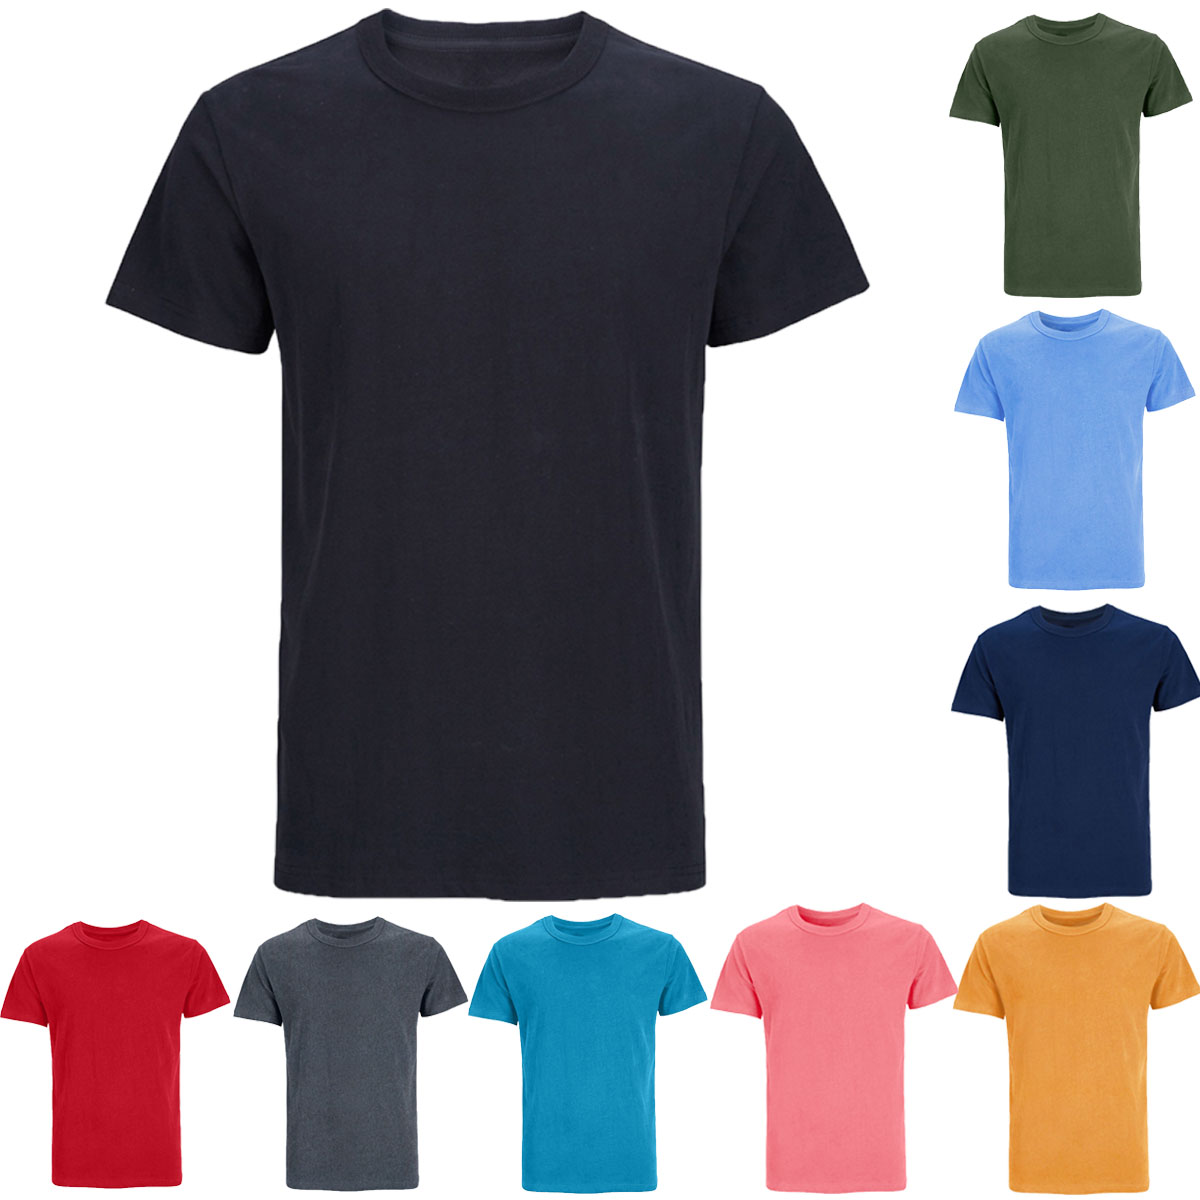 Mens Heavyweight Heavy Cotton Thick Plain Solid 7.3-8.6 Ounce T-Shirts Casual Basic Soft Sport Tee Top Undershirt for Adult